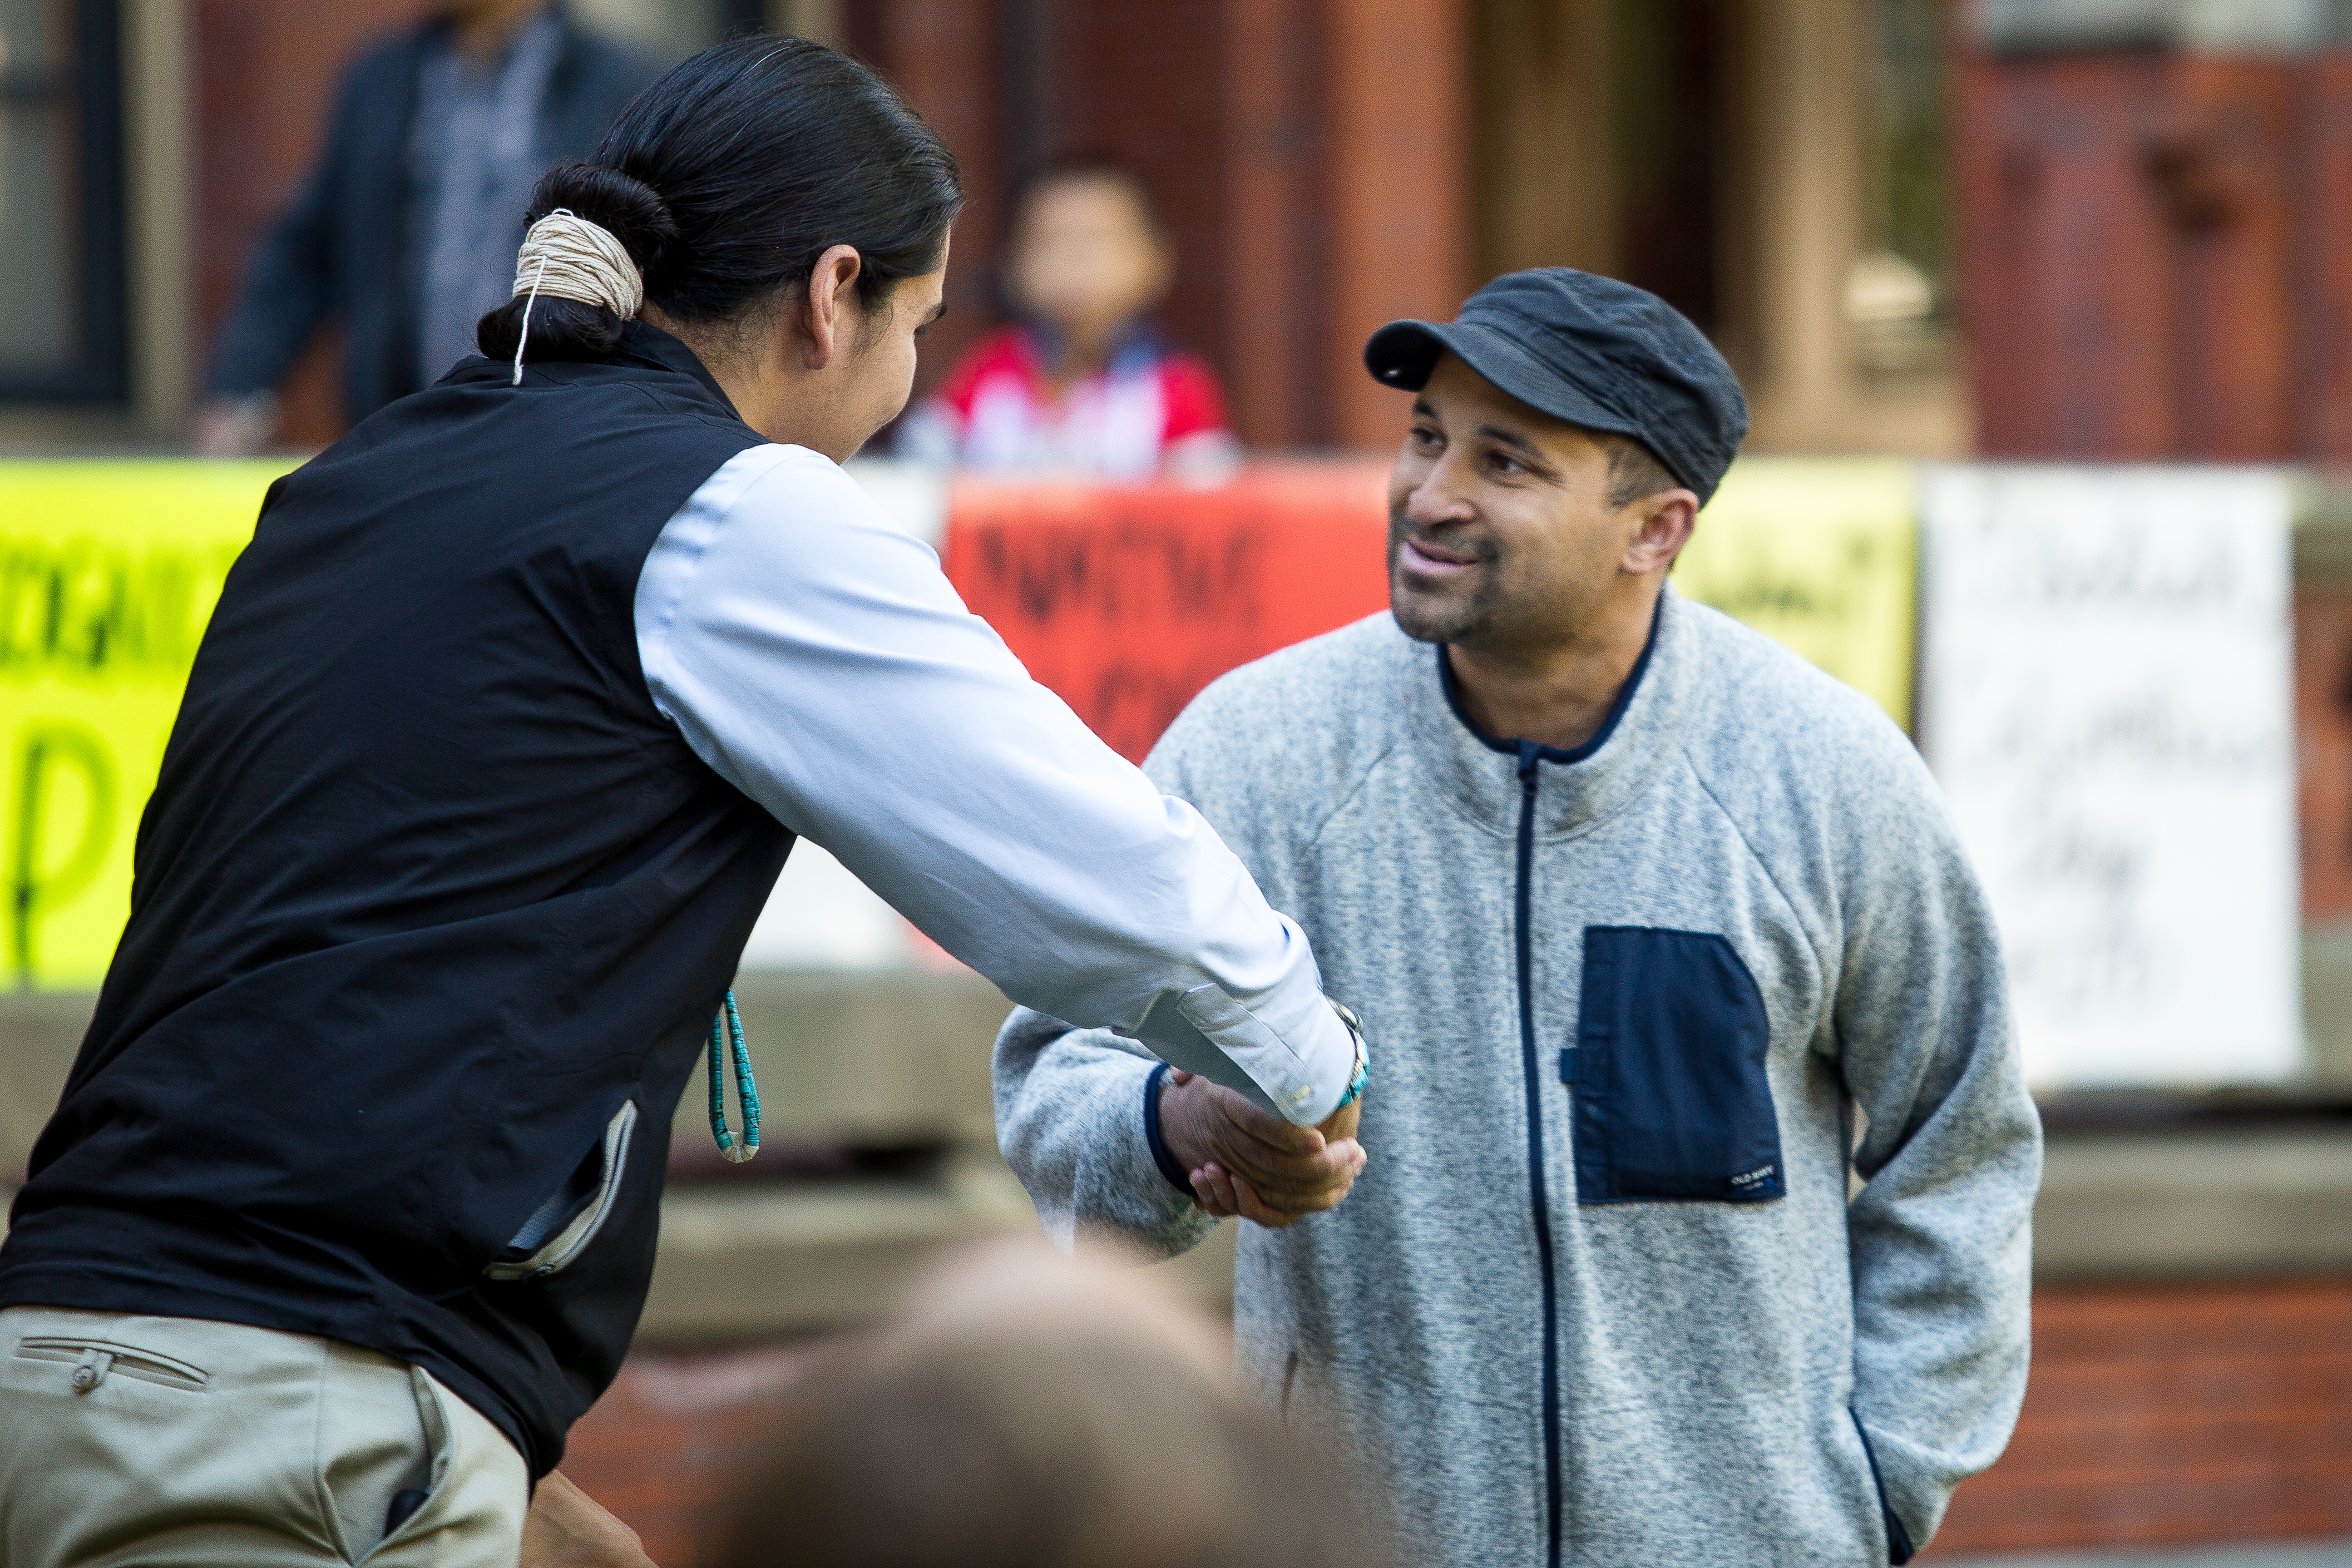 Clark (left) greets William Ridgley, a representative from Local 26, the union representing food service workers at Harvard University. The strikers paused their nearby demonstration to show support for the Indigenous Peoples' Day celebration. Photo by Alexandra Wimley/BU News Service.